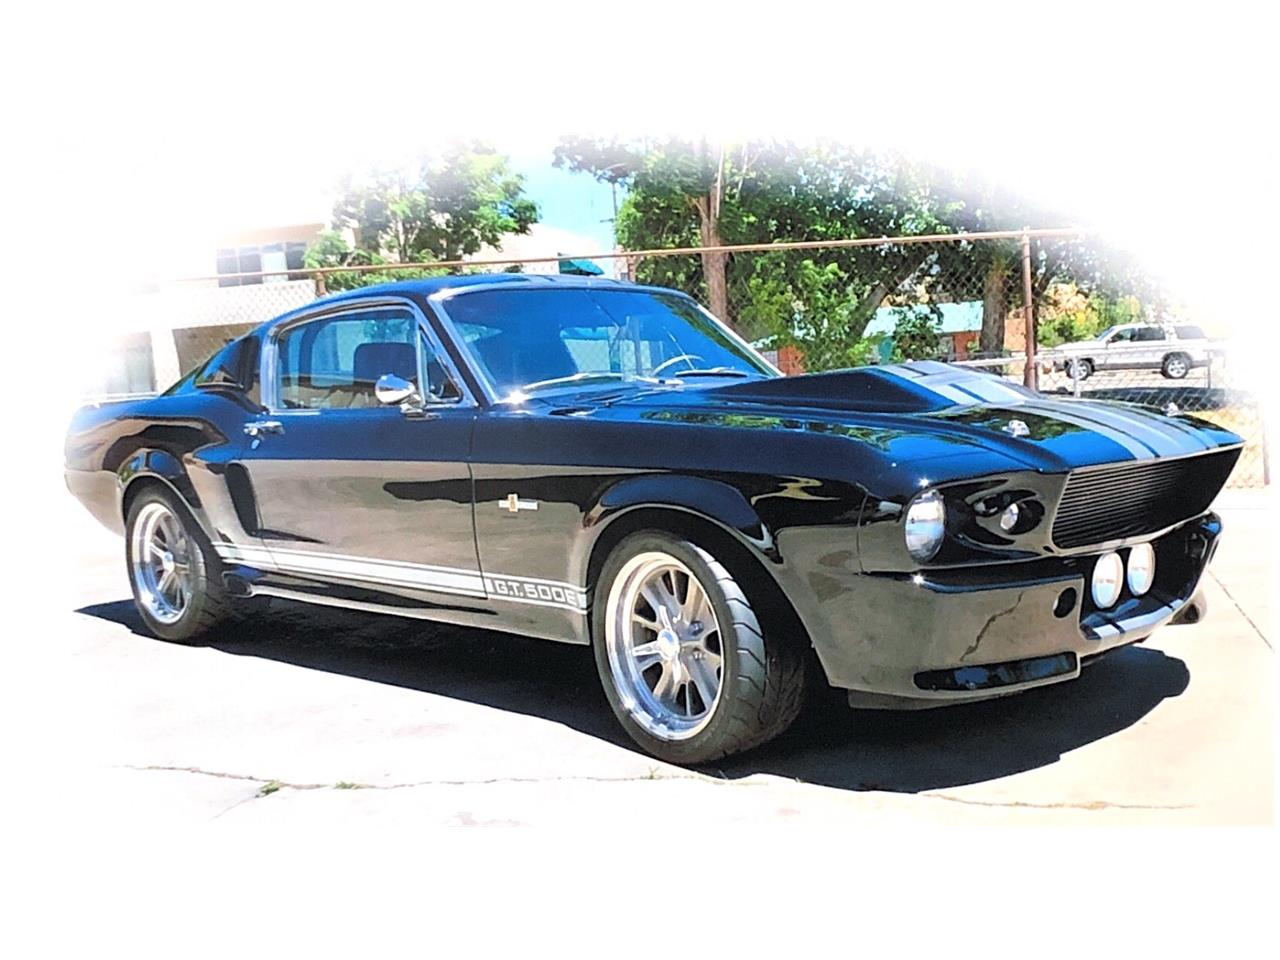 For Sale: 1967 Ford Mustang Shelby Super Snake in Prescott, Arizona